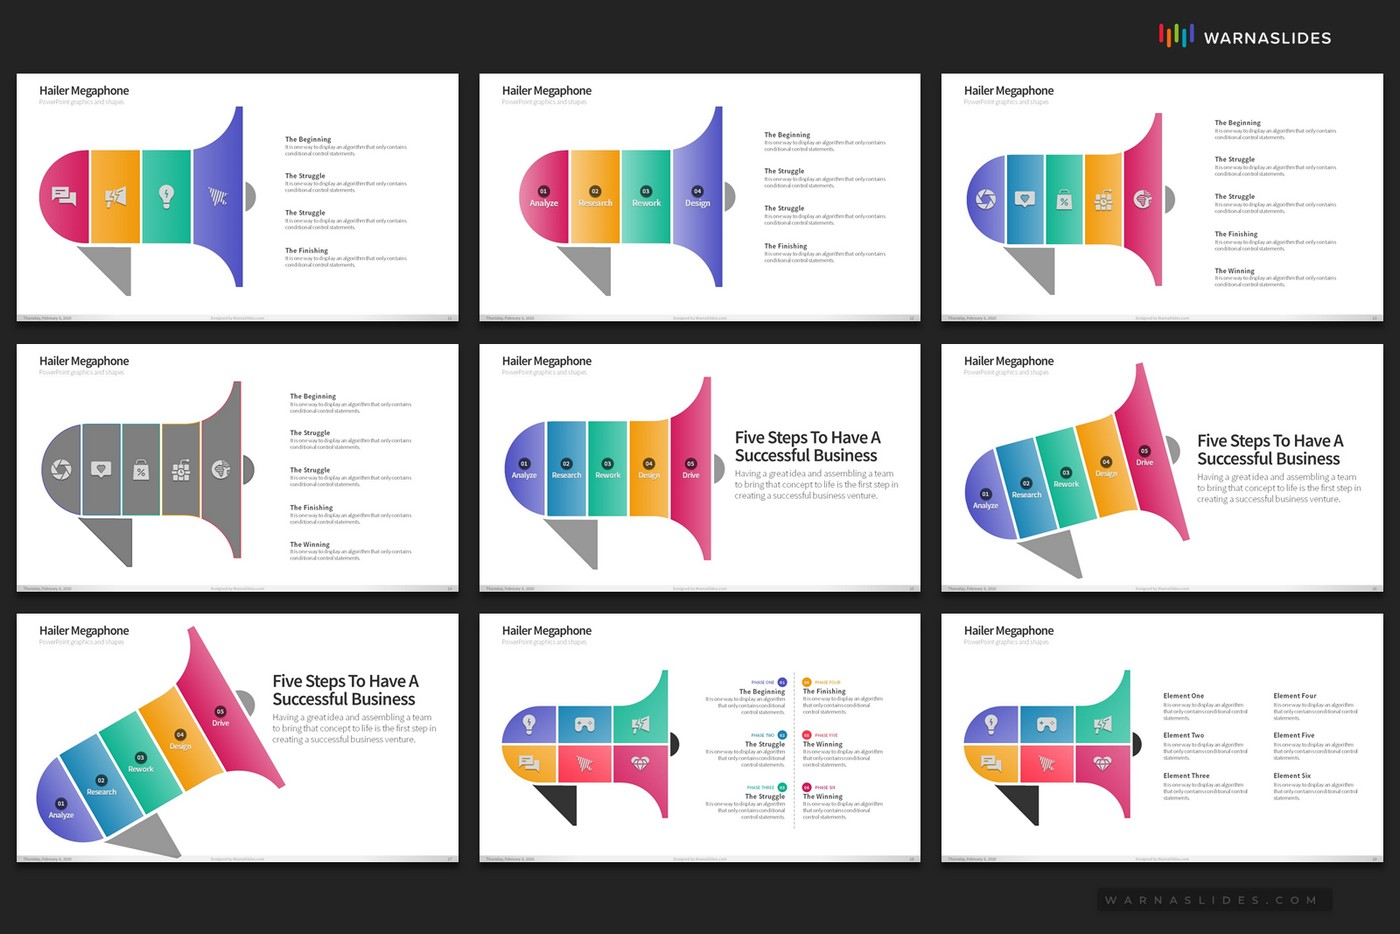 Megaphone-Hailer-Digital-Marketing-PowerPoint-Template-for-Business-Pitch-Deck-Professional-Creative-PowerPoint-Icons-008